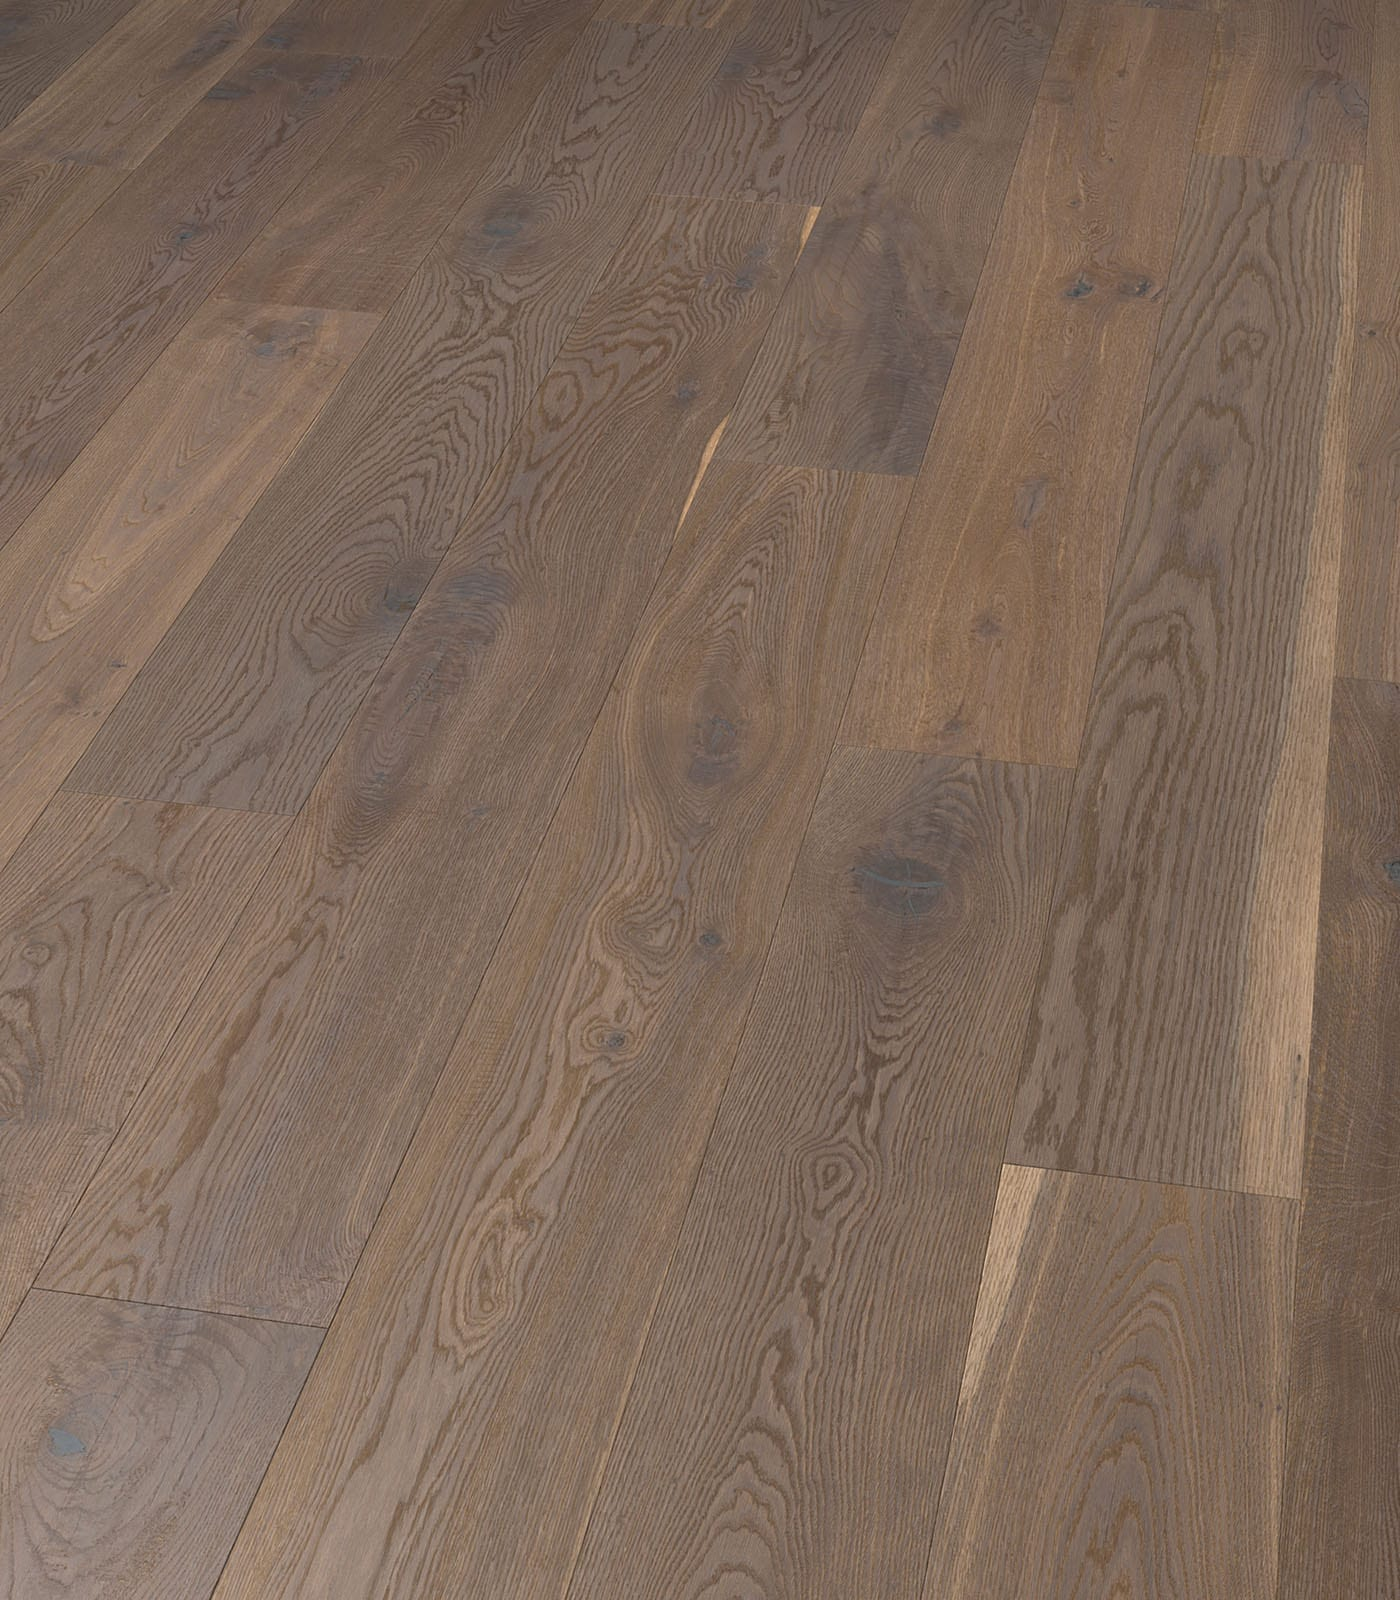 Watzmann-Floors European Oak-Antique Collection